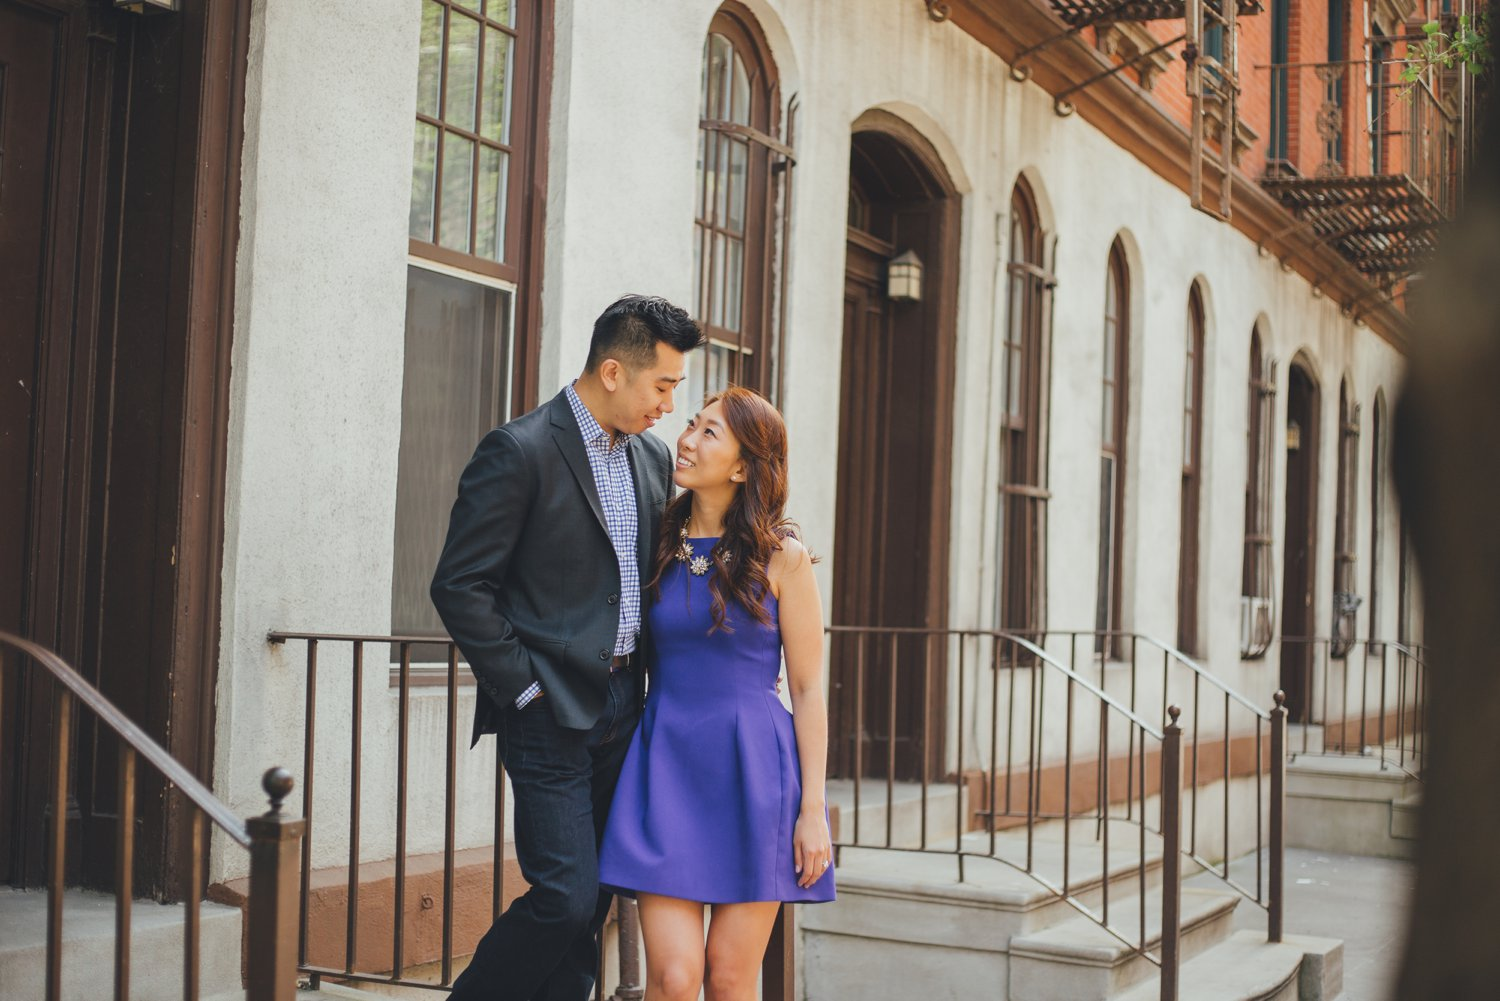 9NYC-NJ-ENGAGEMENT-PHOTOGRAPHY-BY-INTOTHESTORY-MOO-JAE.JPG